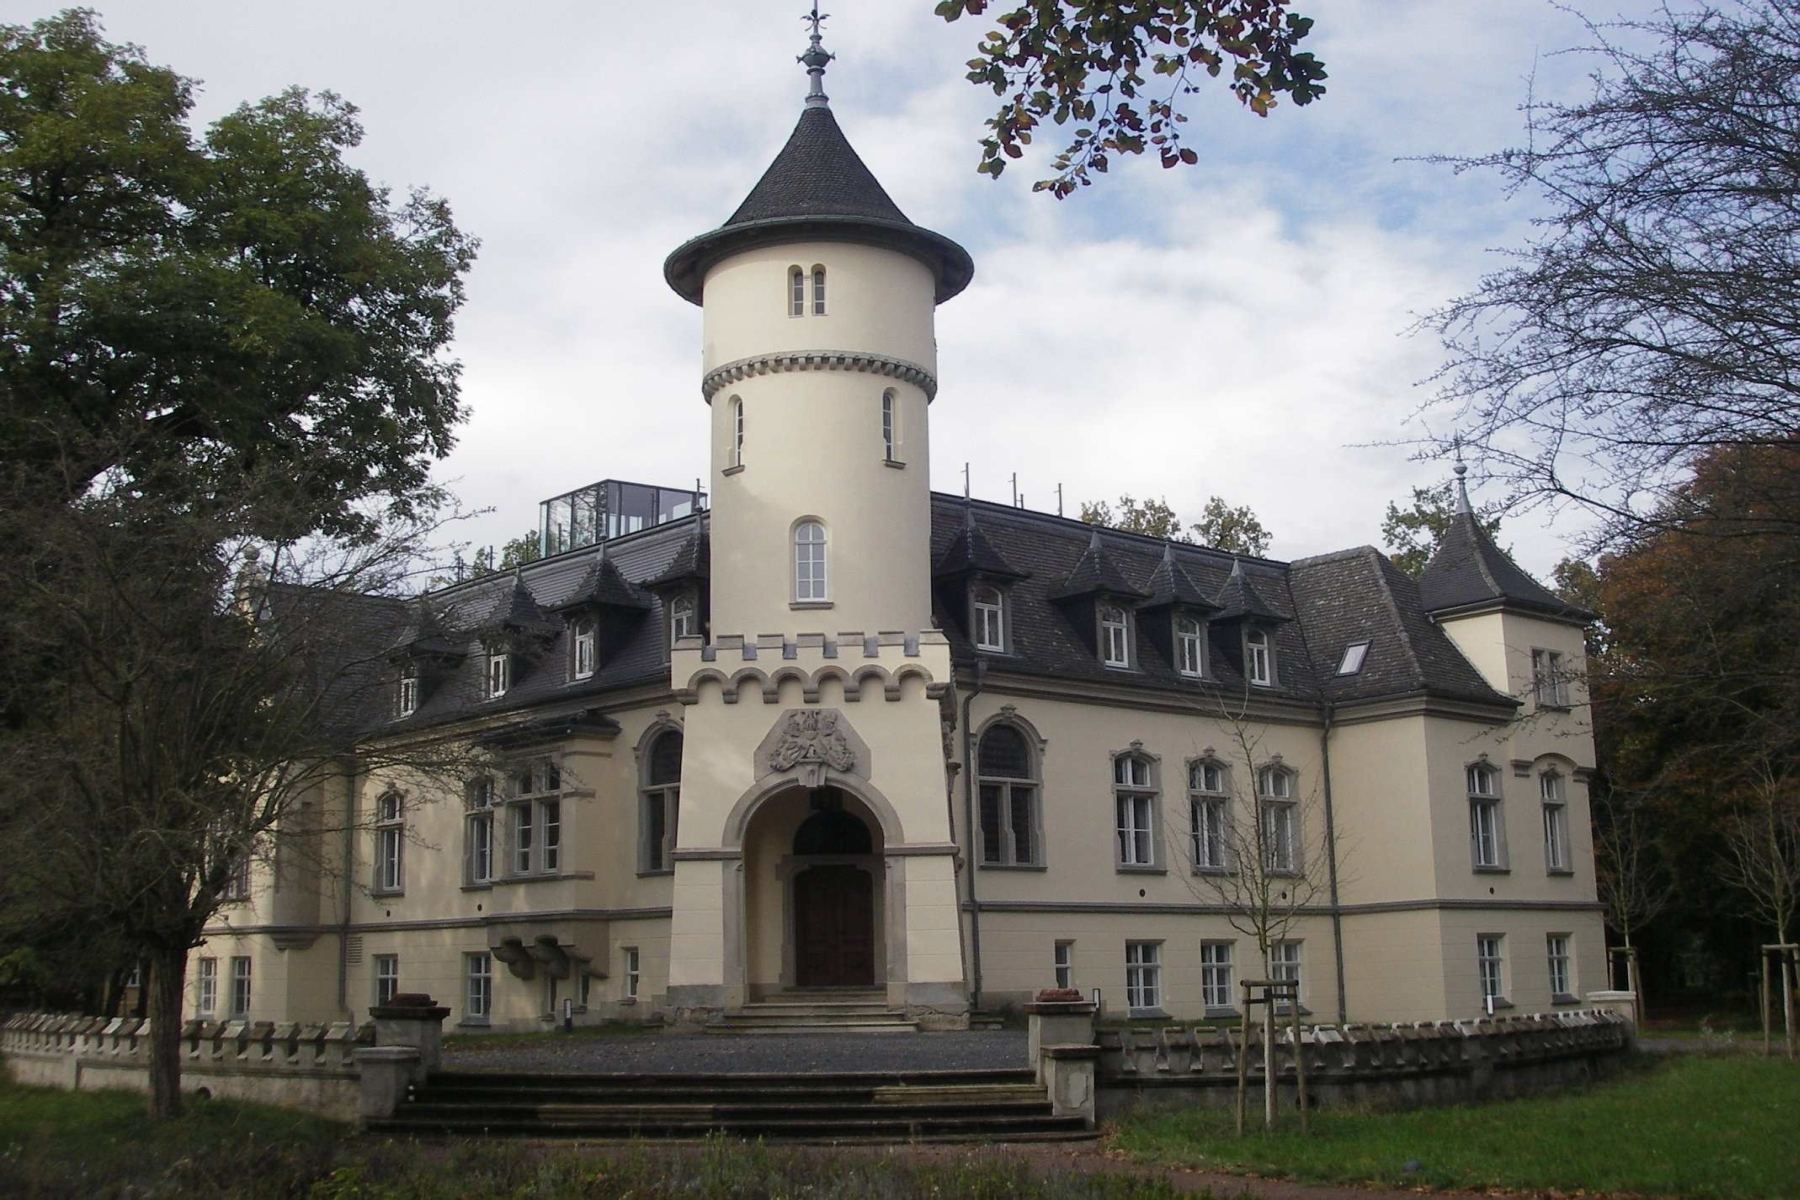 Single Family Home for Sale at Let your dreams come true at the Hohenbocka Château ! Hohenbocka, Brandenburg 01945 Germany